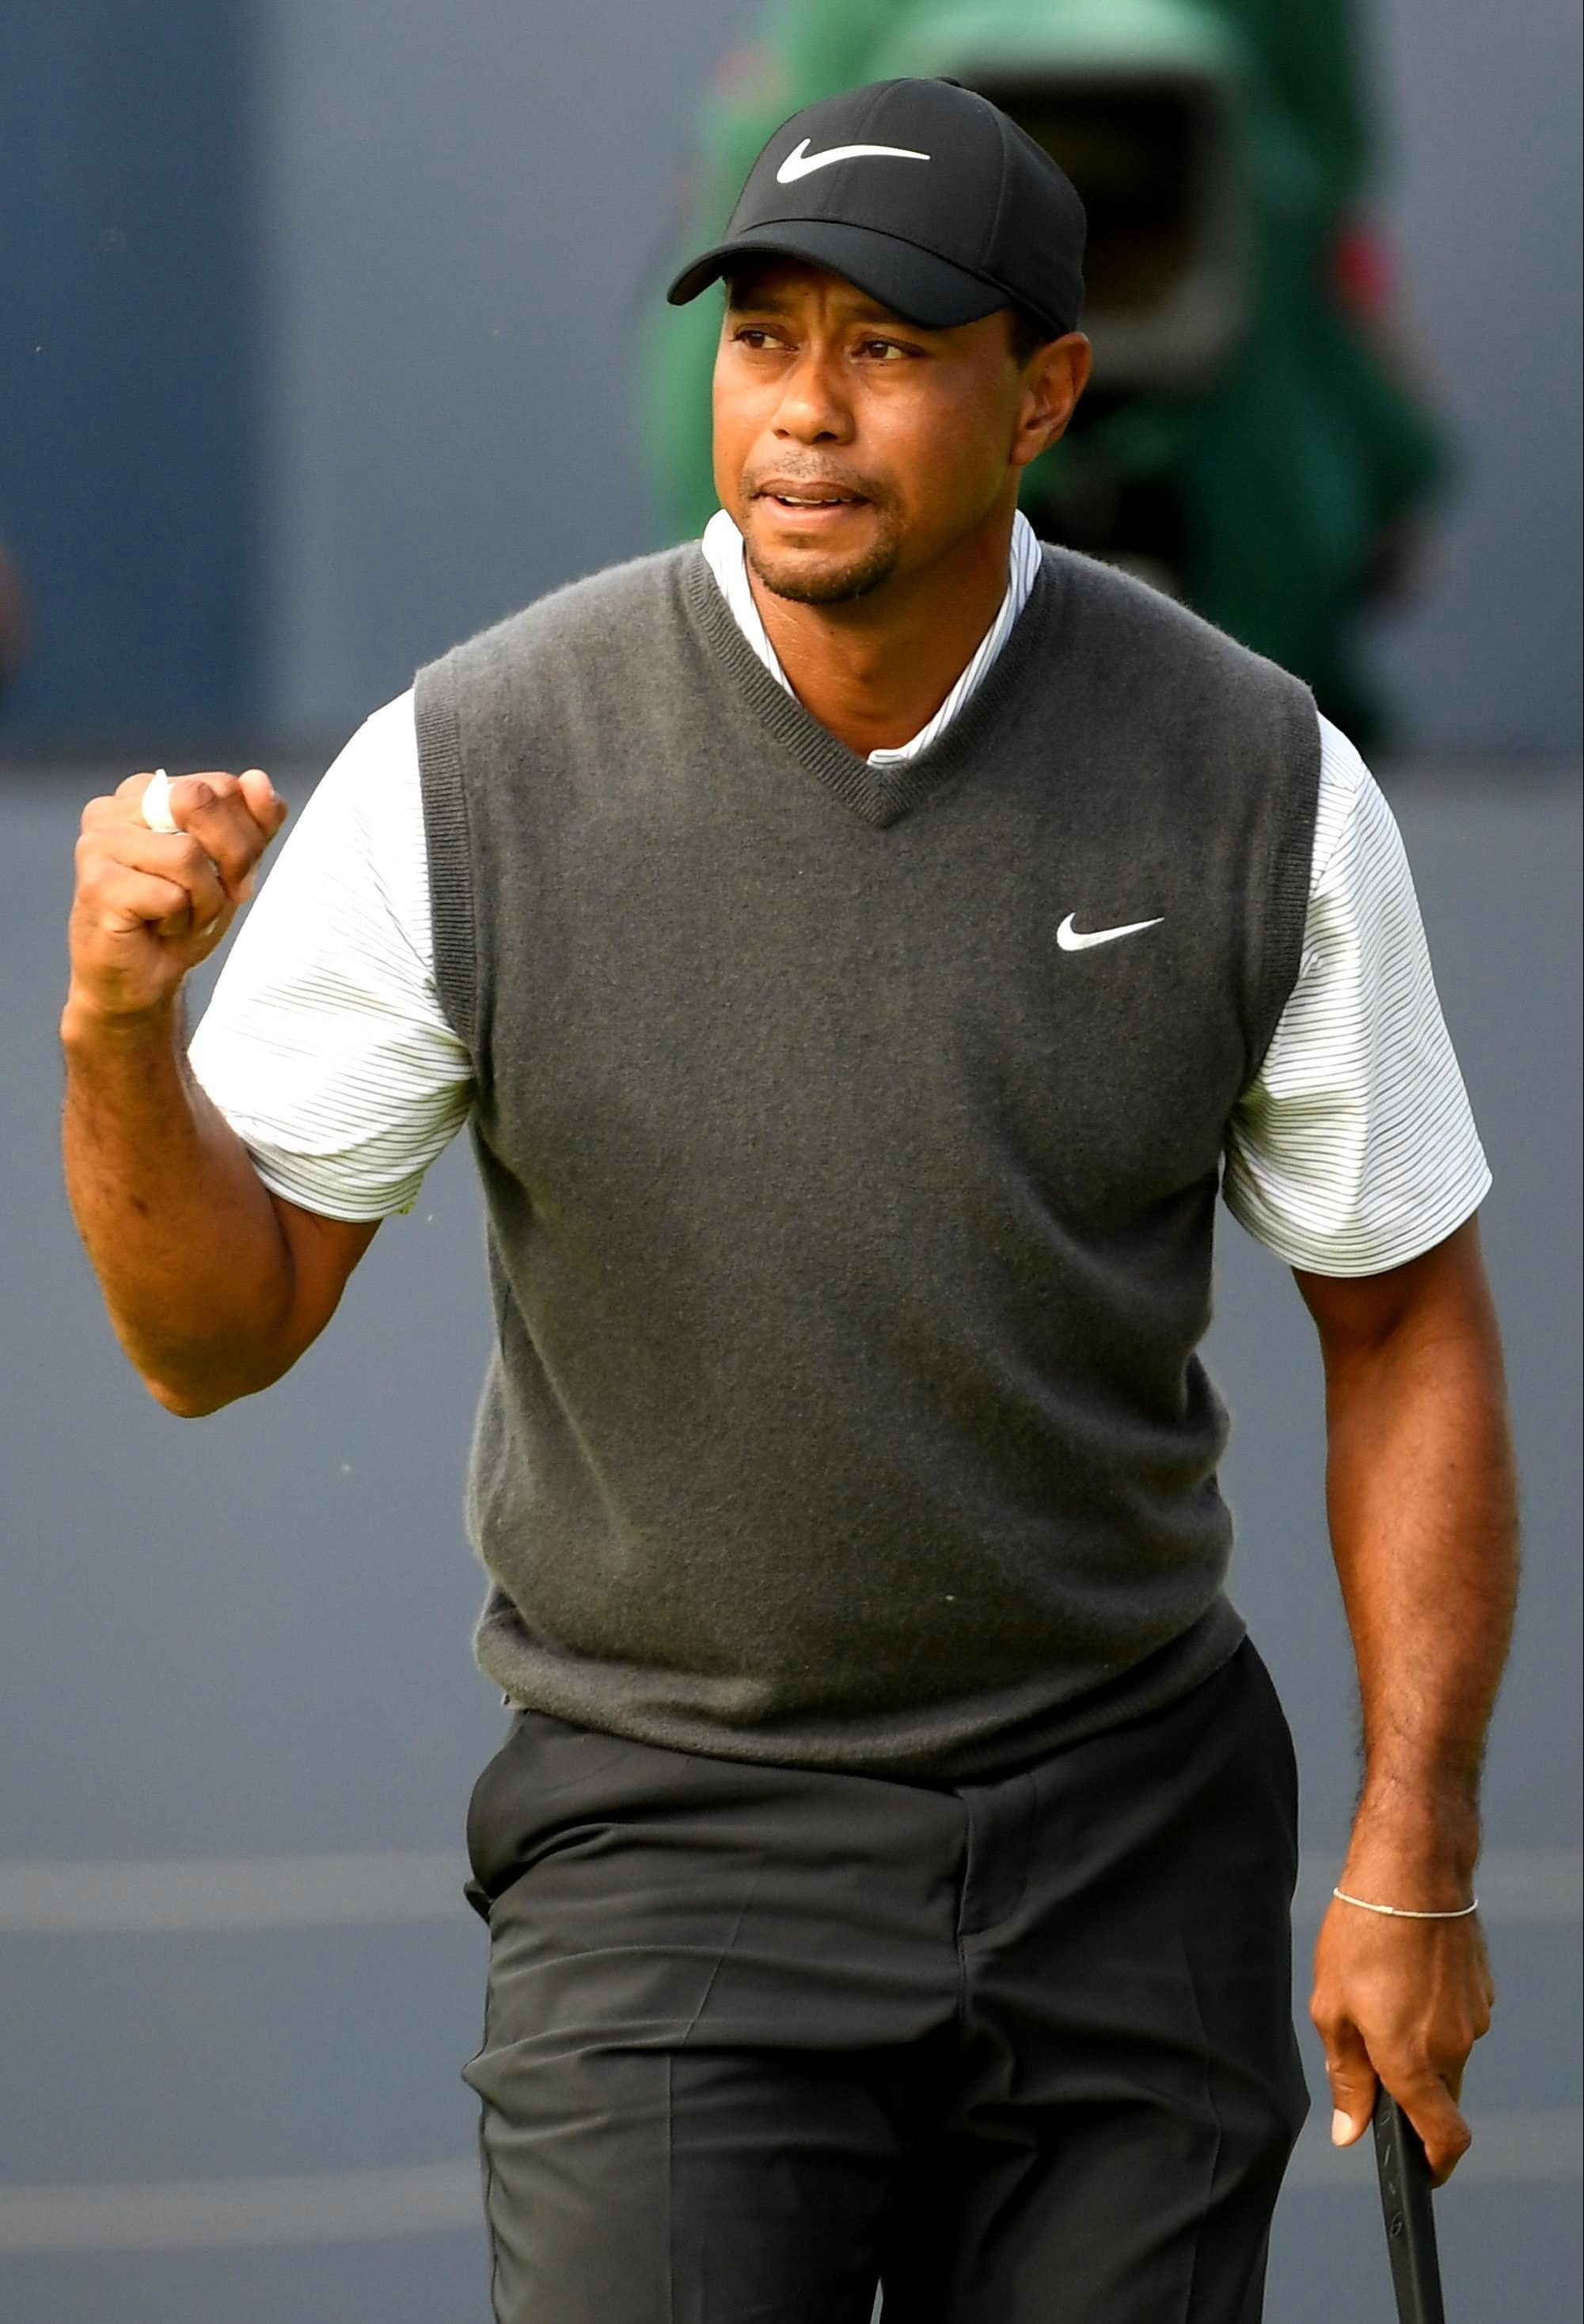 Tiger Woods finished just behind champion Francesco Molinari at The Open